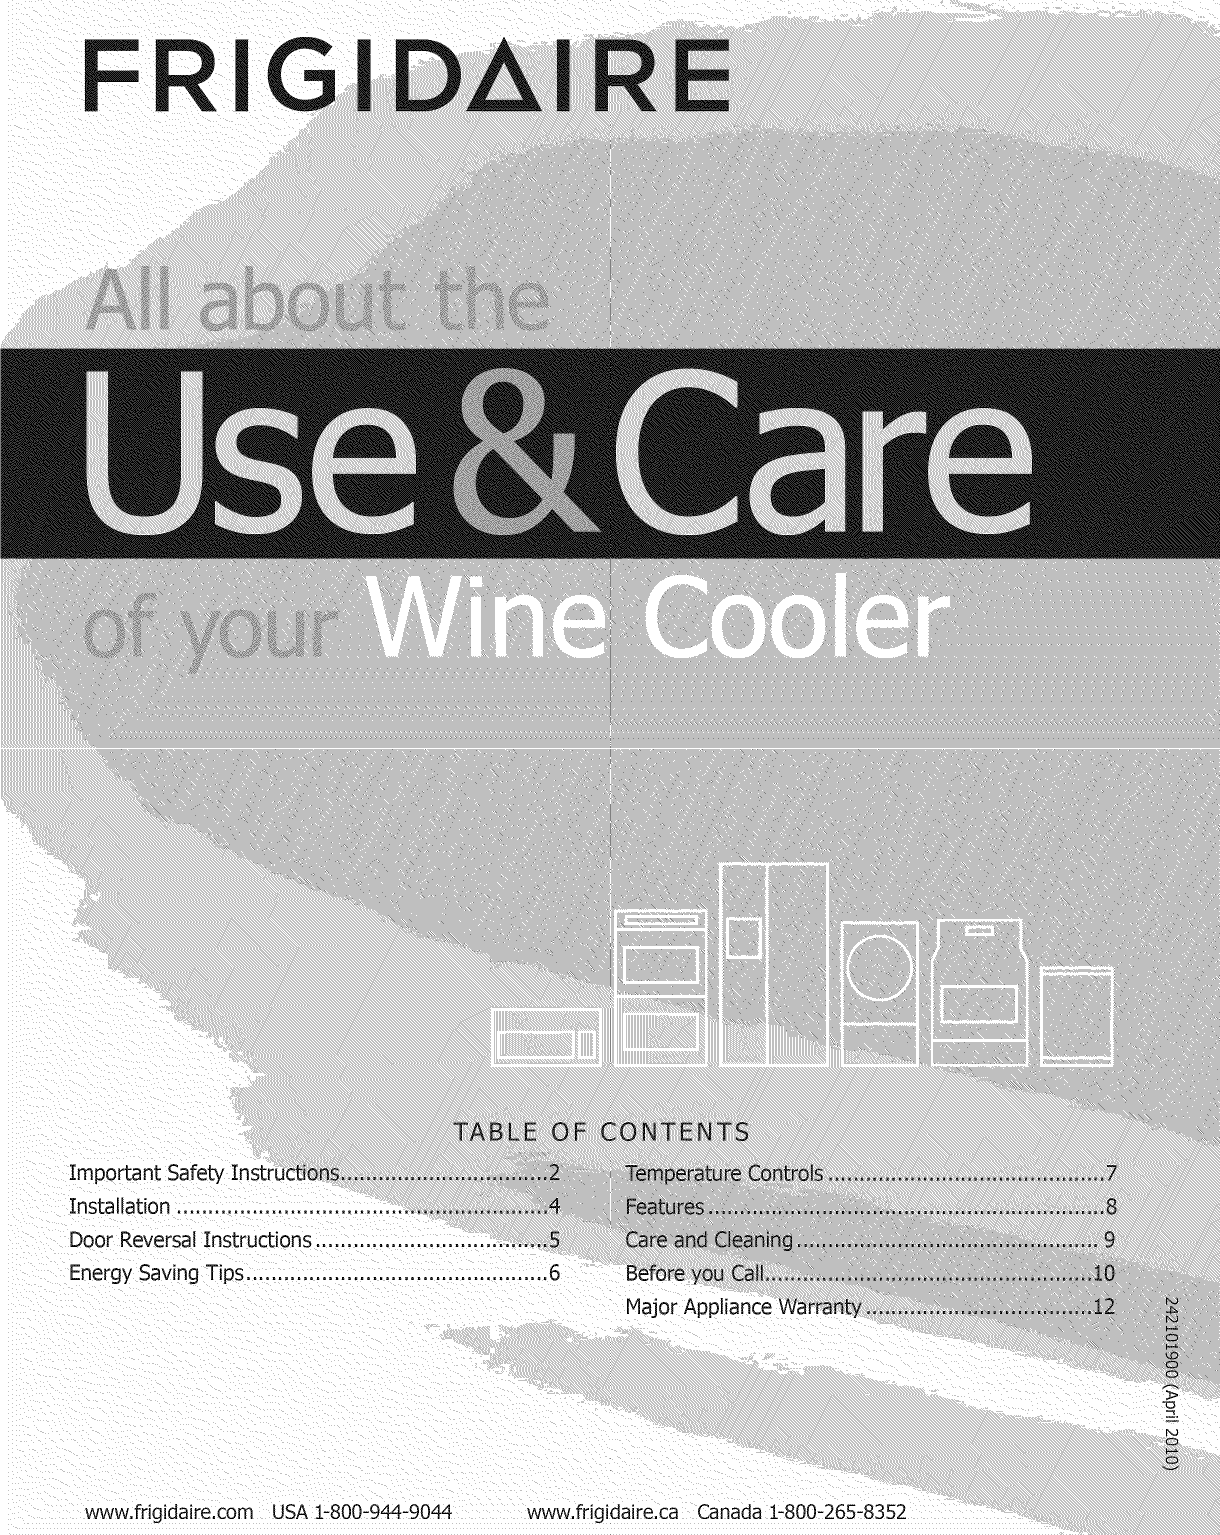 Wiring Diagram For Frigidaire Wine Cooler Trusted Diagrams Cfwc38f6ls 1009842l User Manual Manuals And Oven Parts